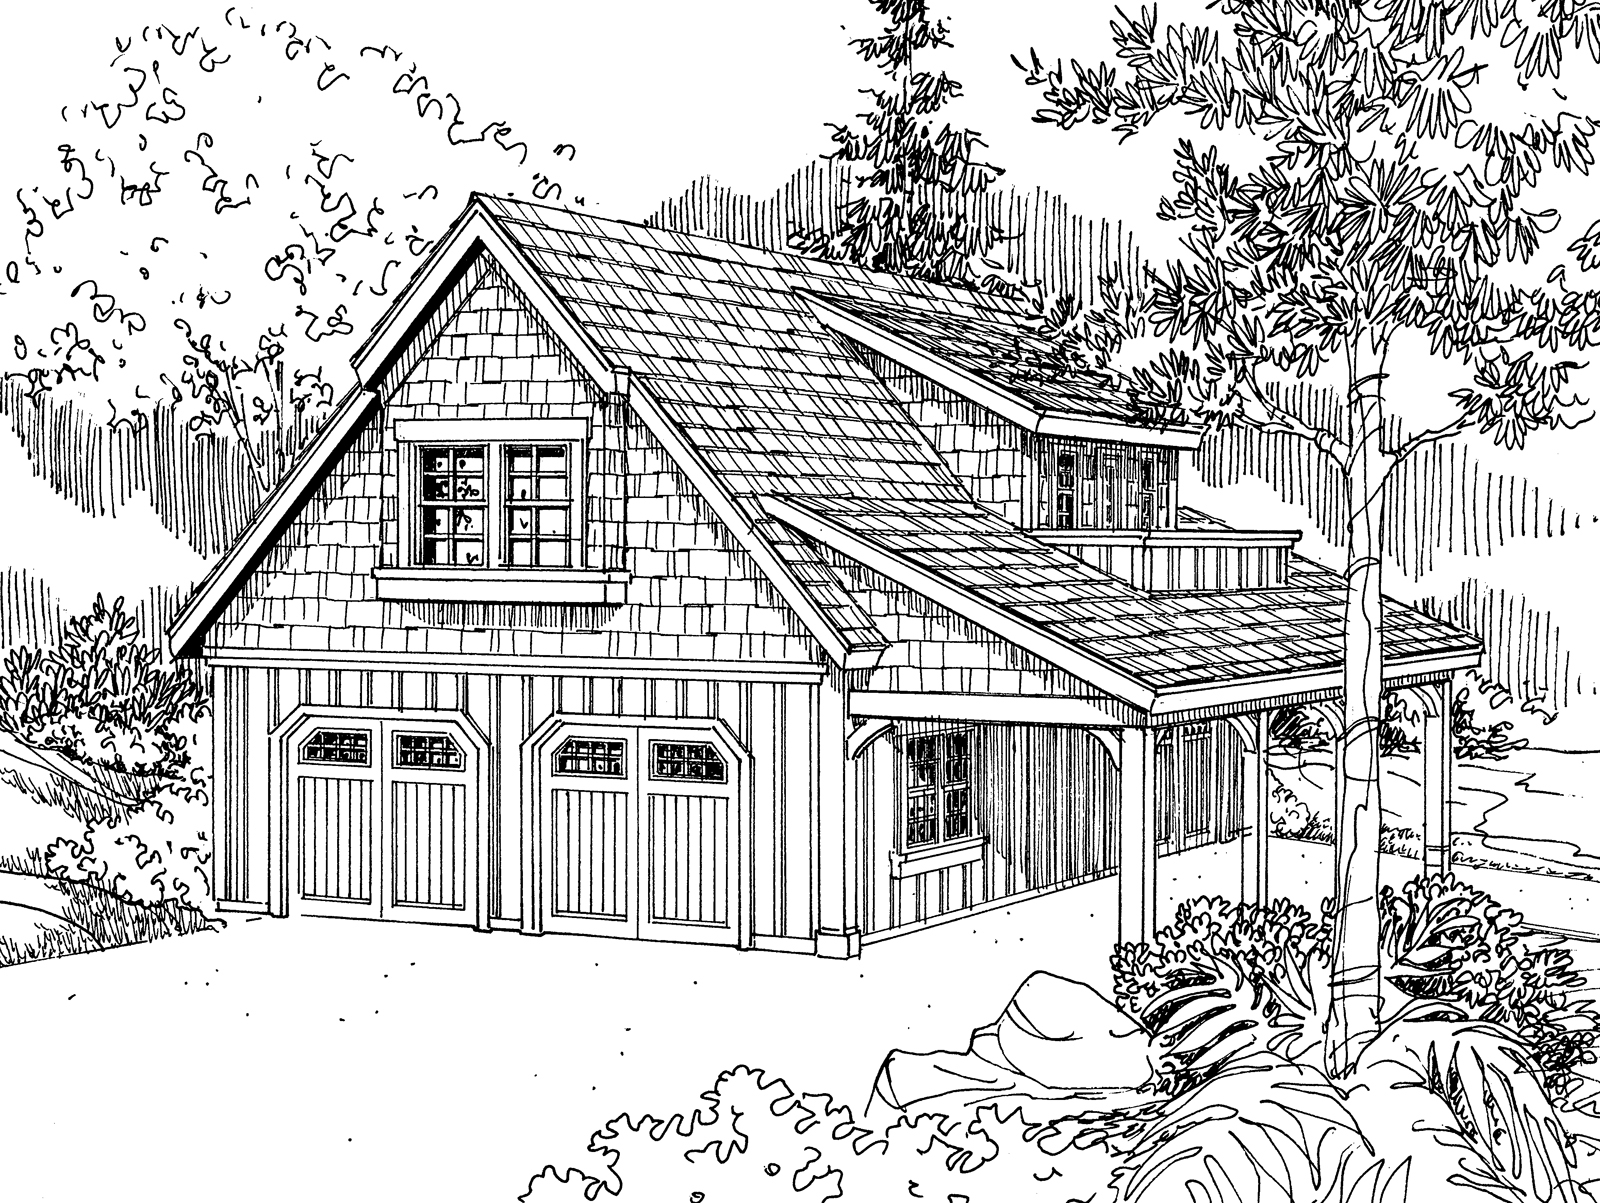 Garage with Living 20-080, Craftsman Garage Plan, Hobby, Loft